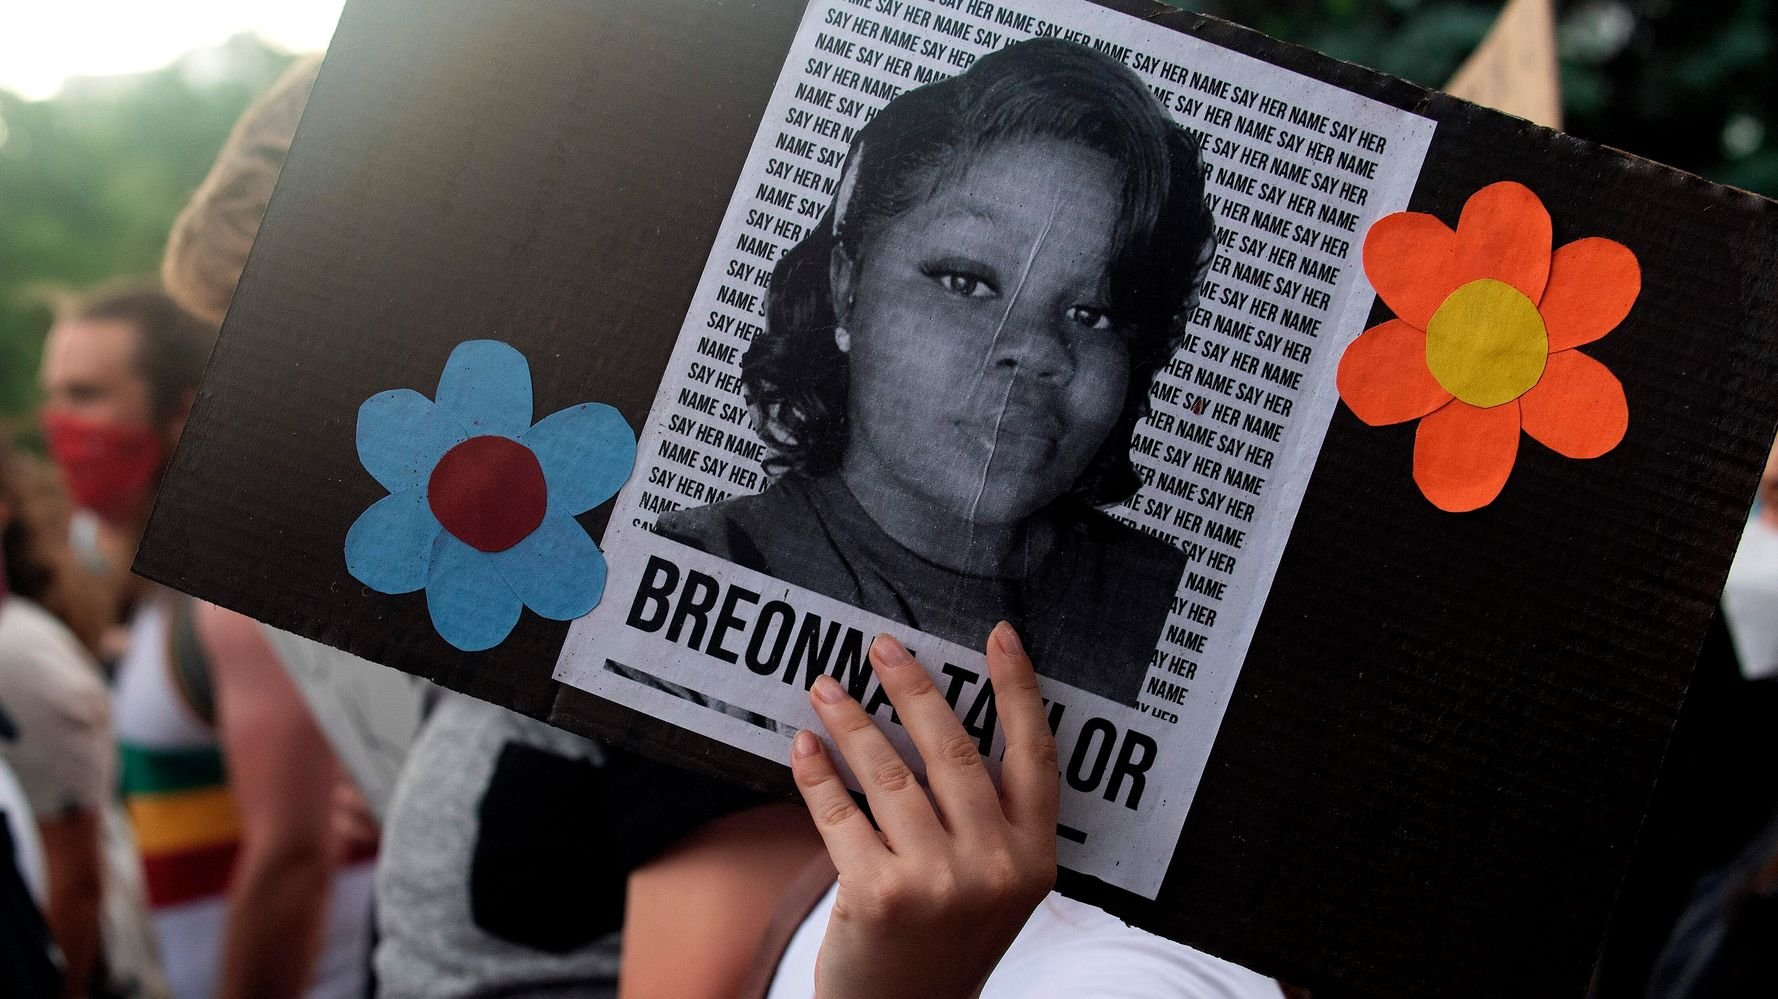 The Memeification Of Breonna Taylor's Death